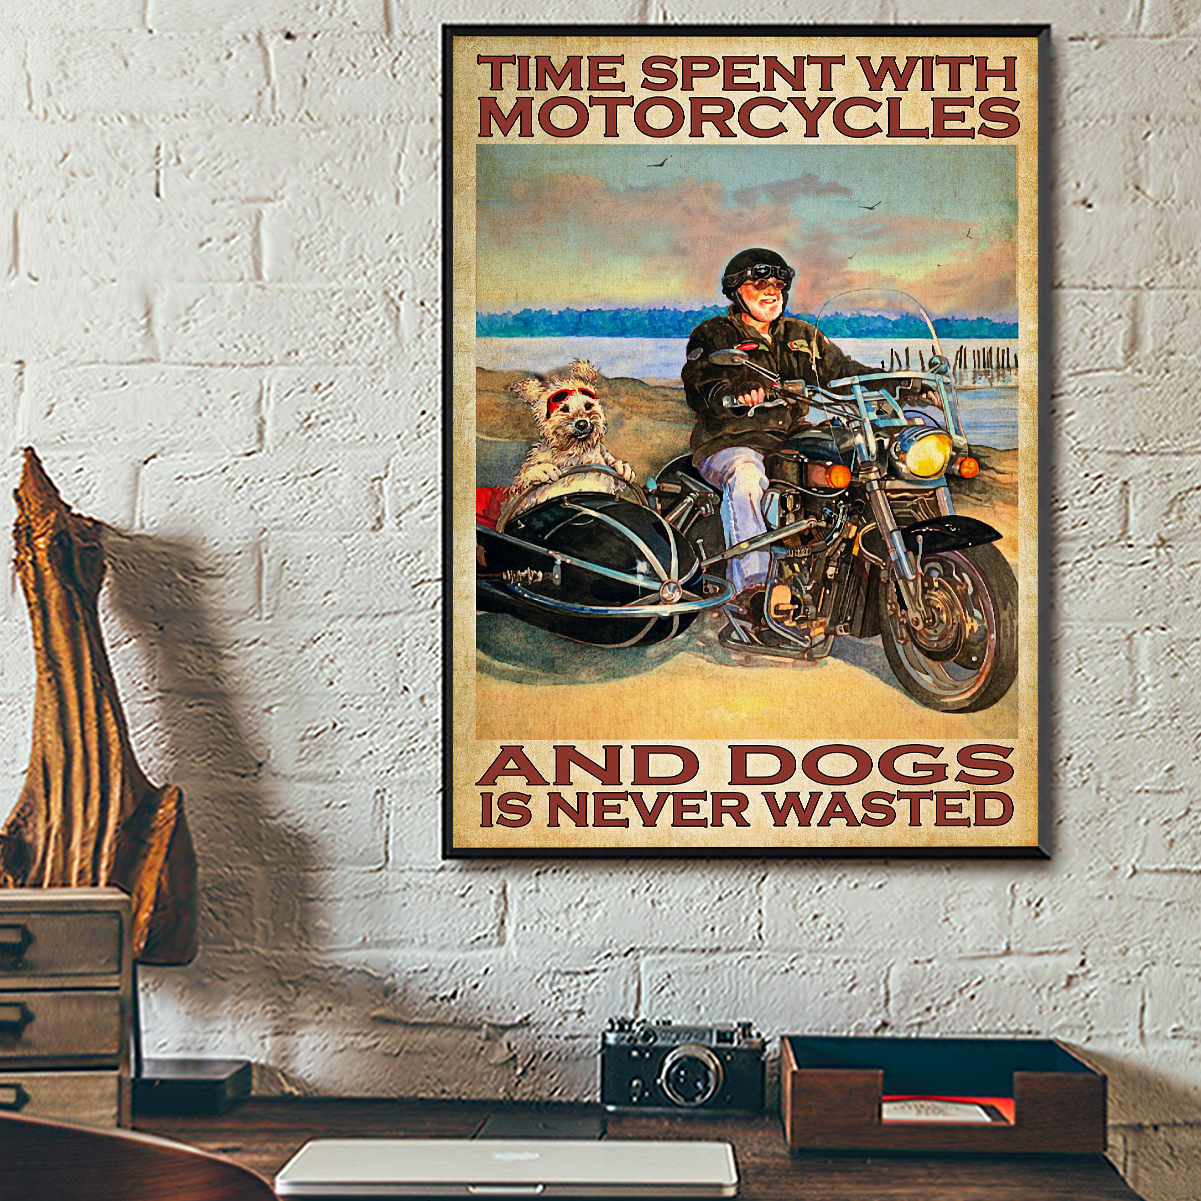 Time spent with motorcycles and dogs is never wasted poster A3